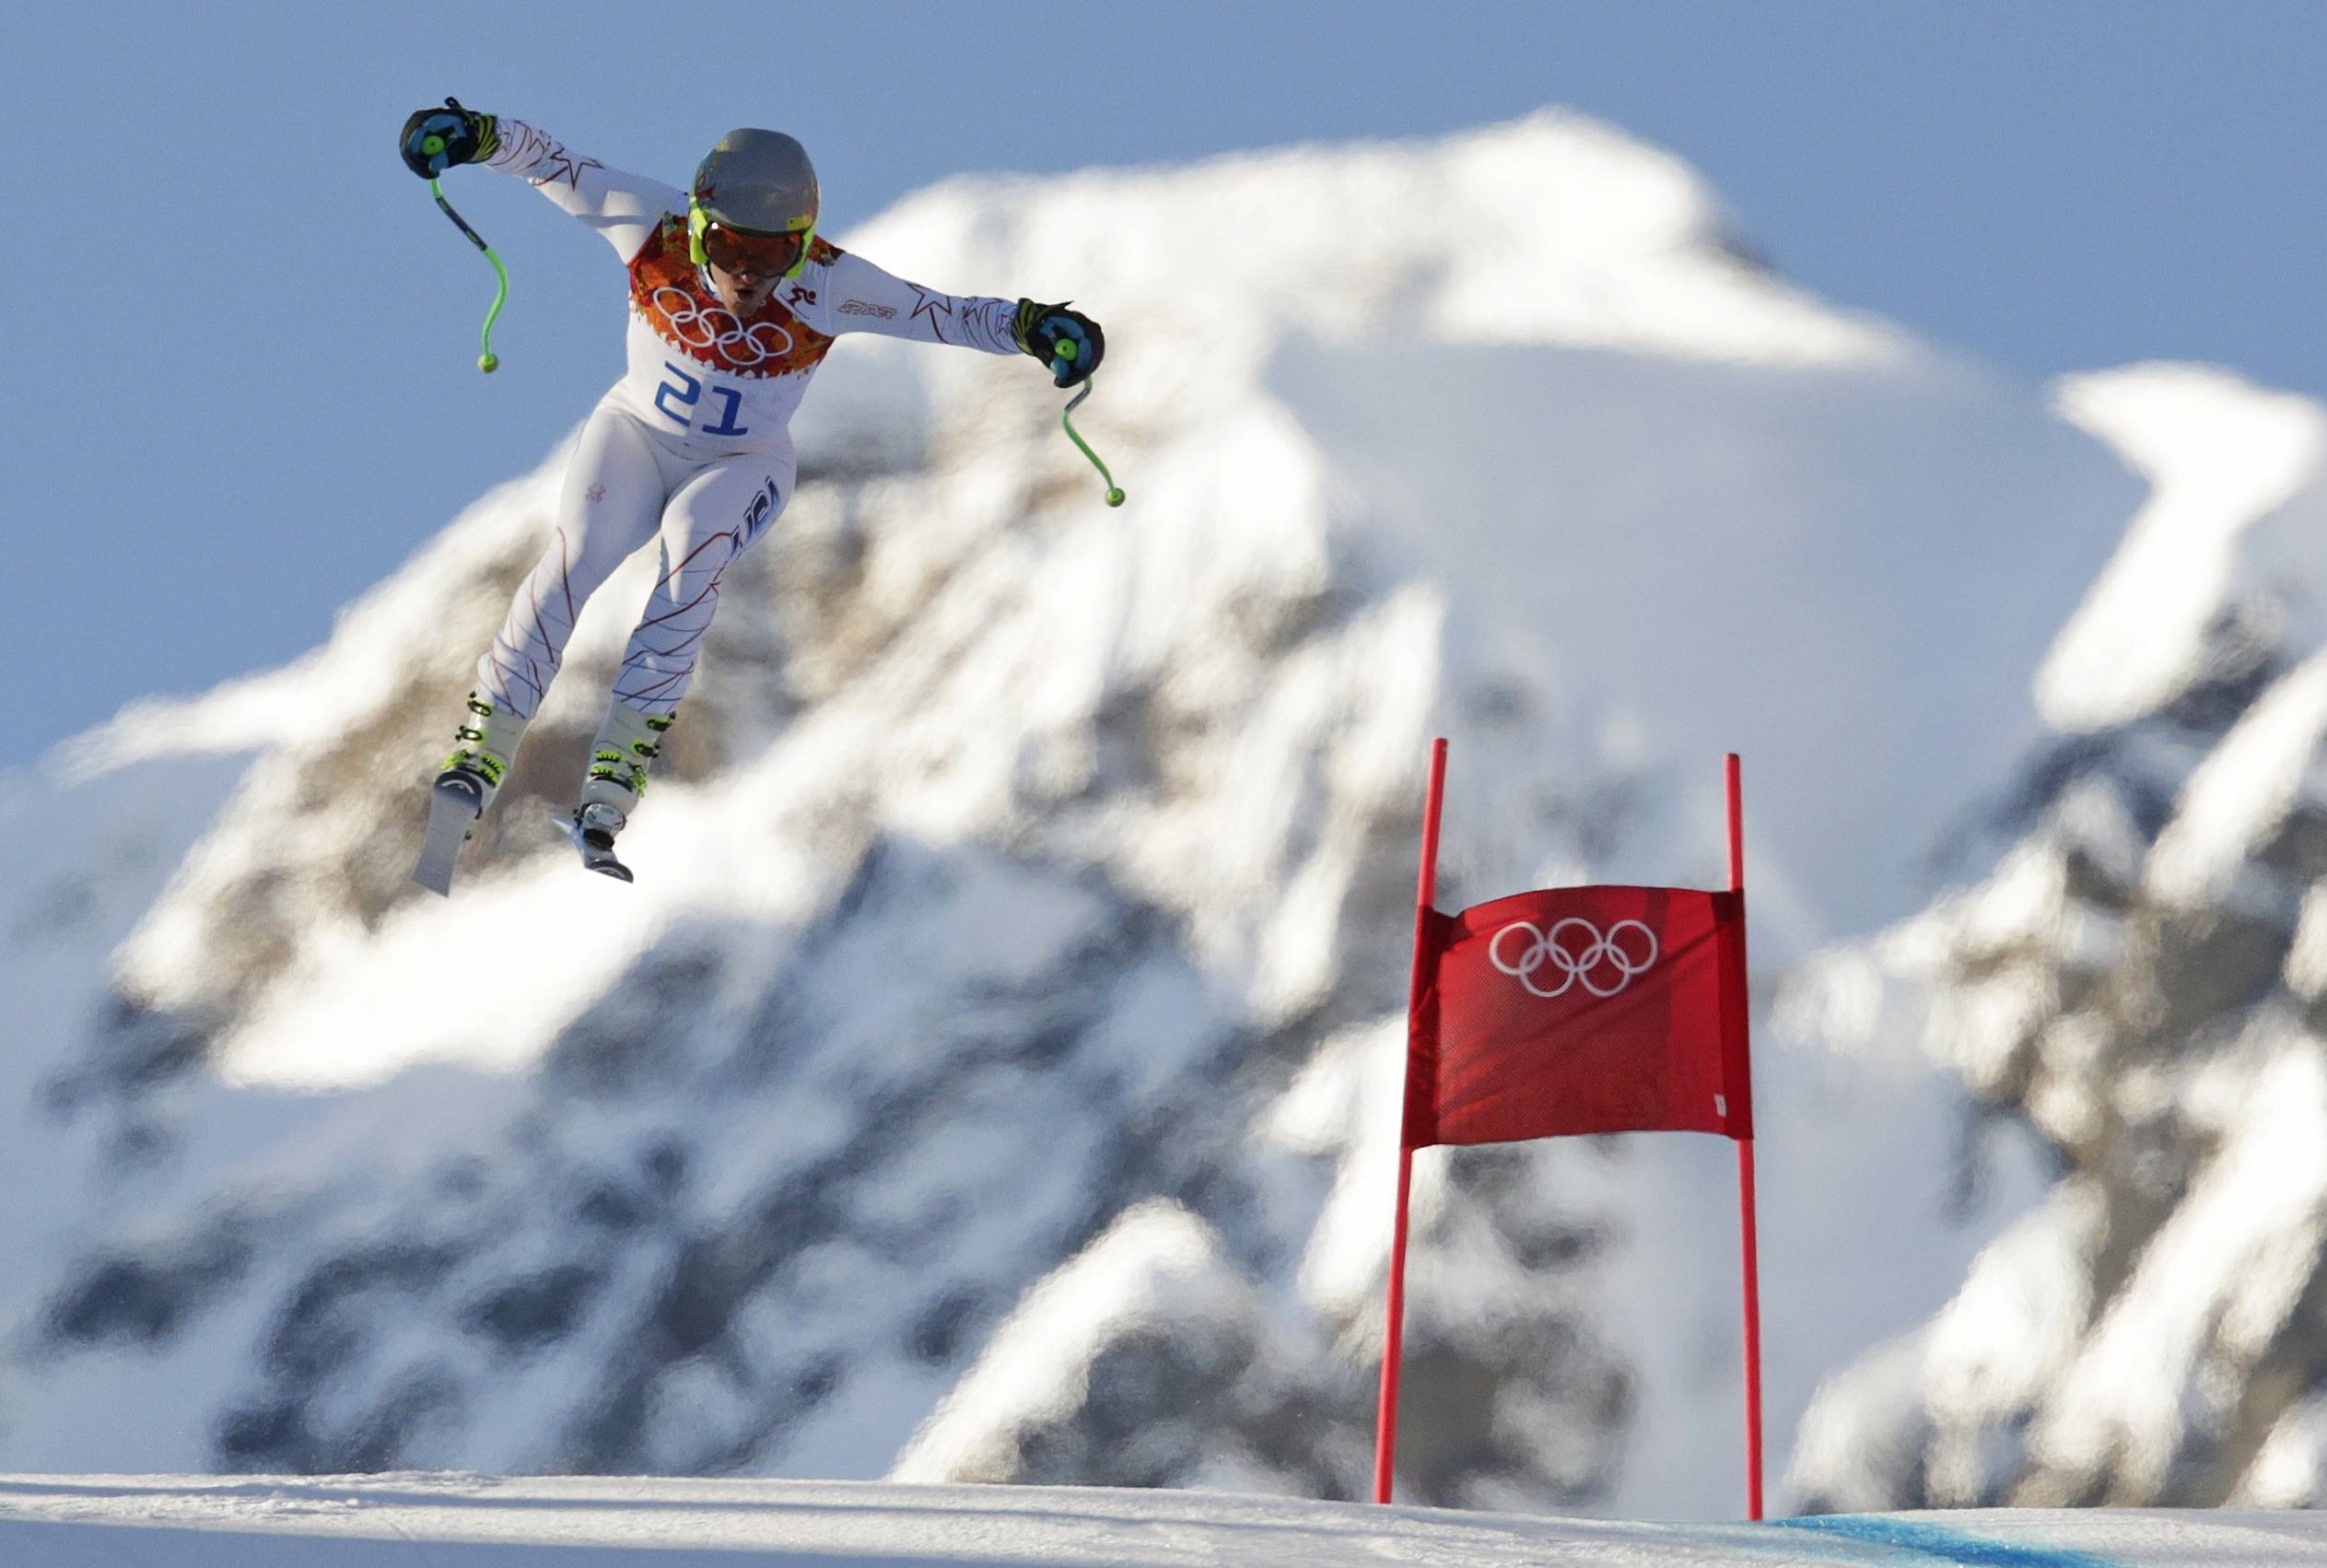 United States skier Ted Ligety makes a jump Thursday during men's downhill combined training at the Sochi 2014 Winter Olympics in Krasnaya Polyana, Russia.